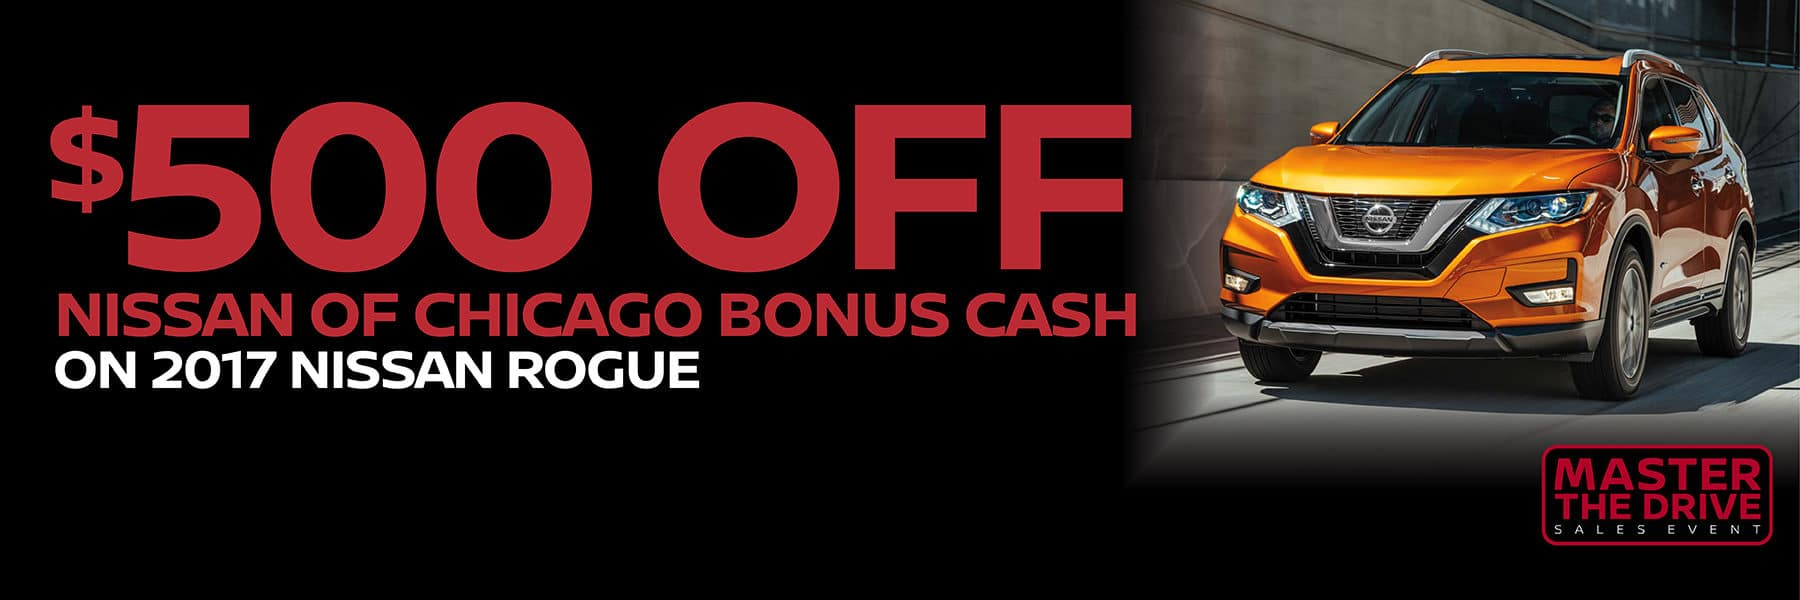 $500 Bonus Cash on the 2017 Nissan Rogue at Berman Nissan of Chicago for Master the Drive Sales Event